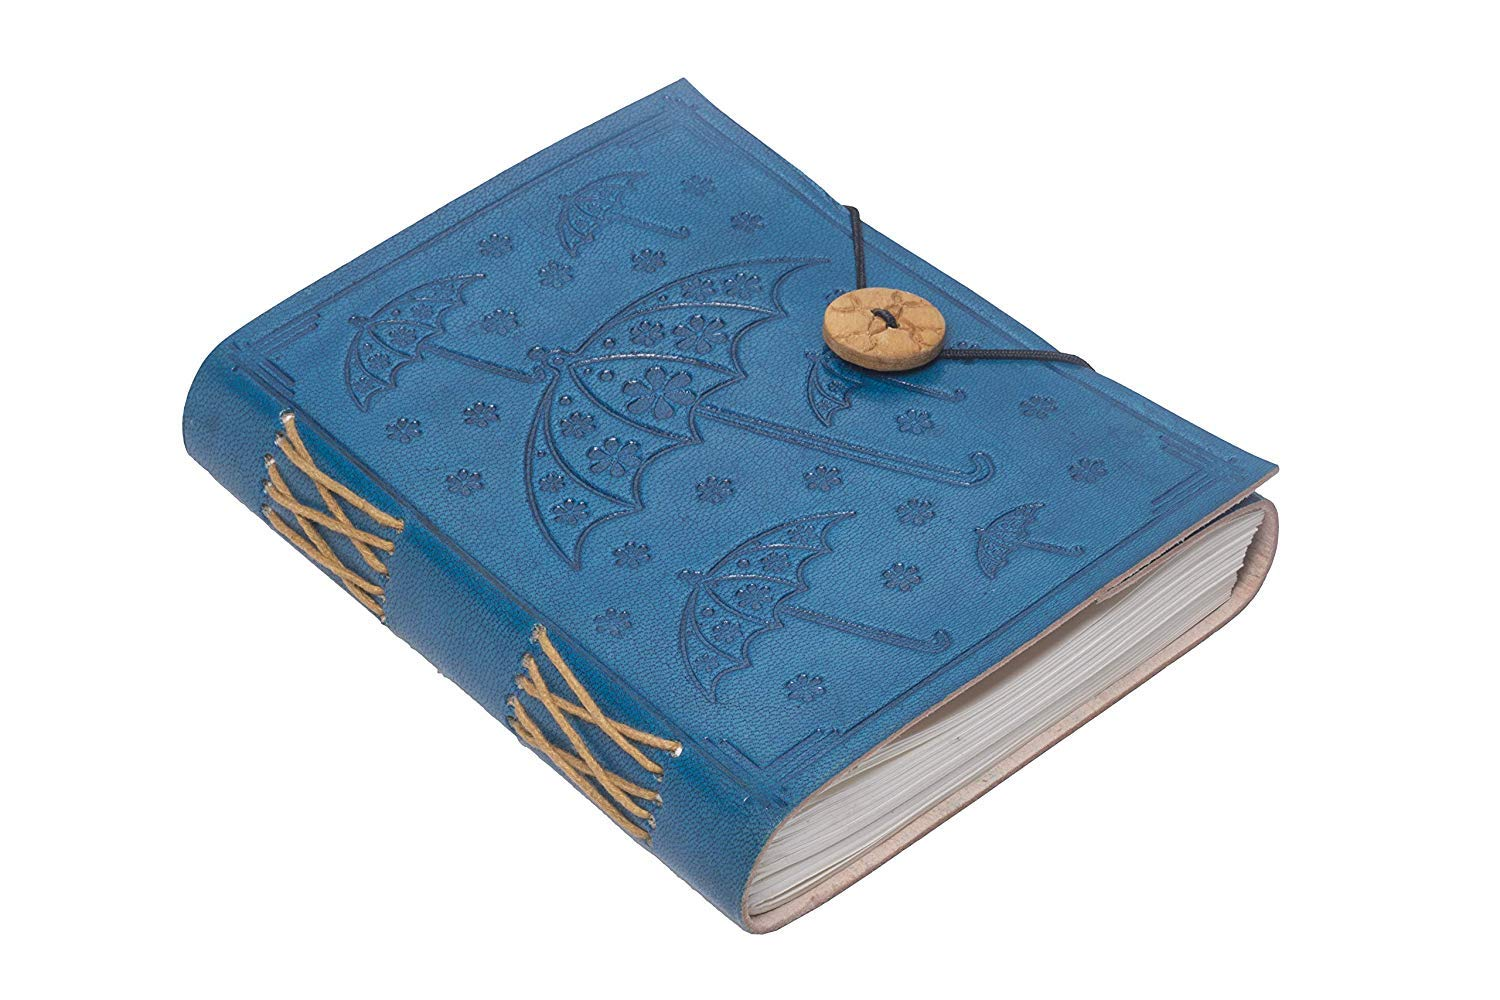 Di-Kraft Handmade Classic Design Leather Notebook Writing Diary For Gift 120 Gsm Blue Diary